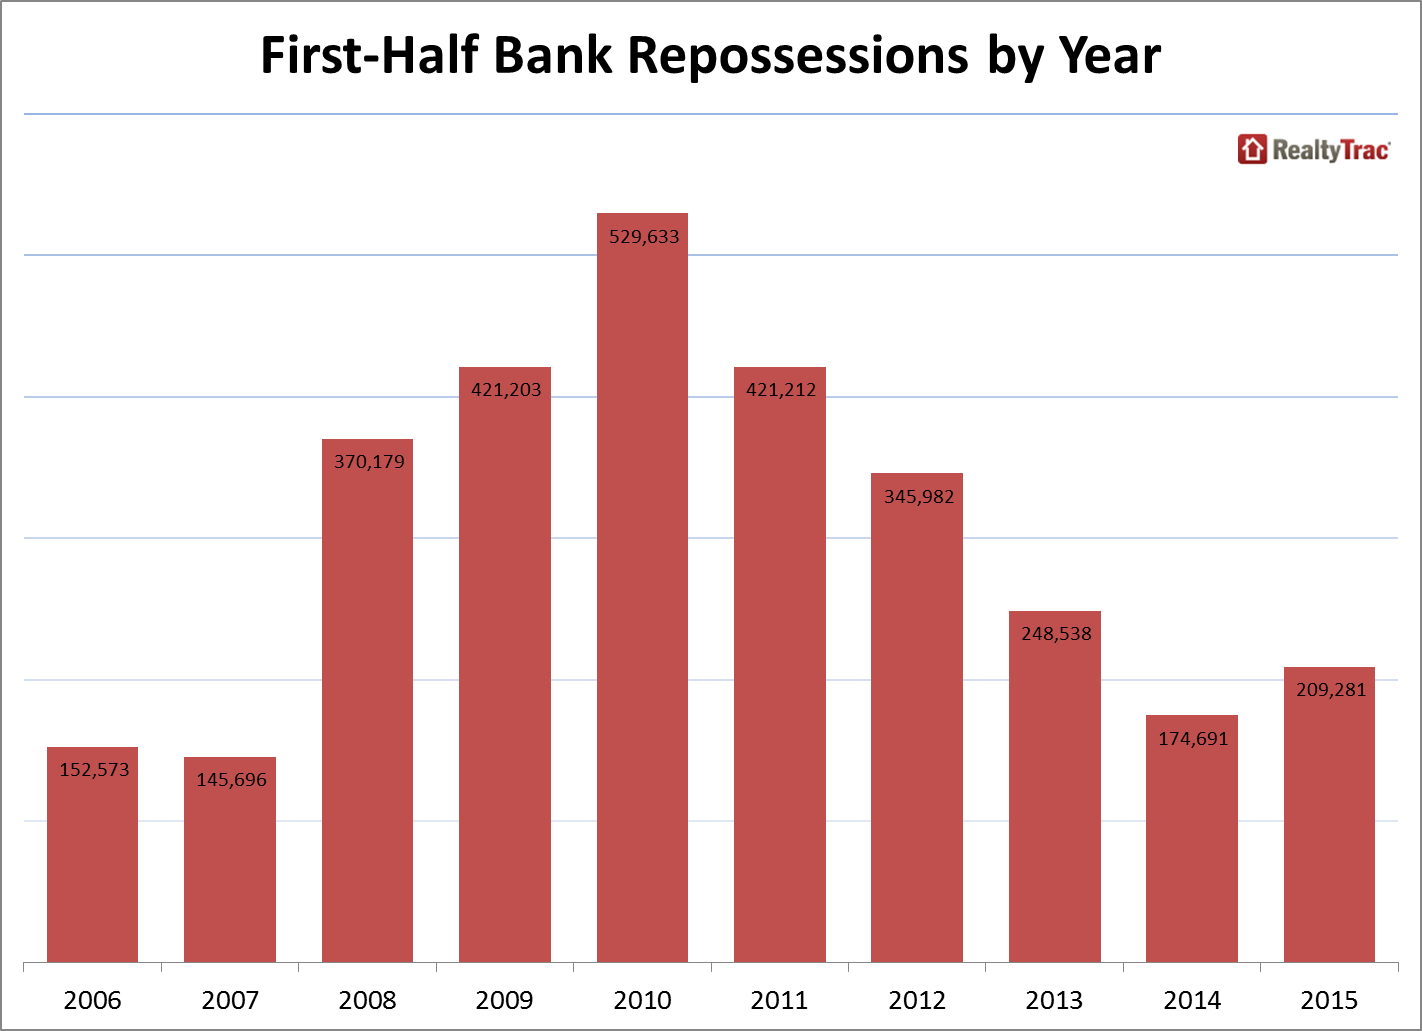 First half bank repossessions by year